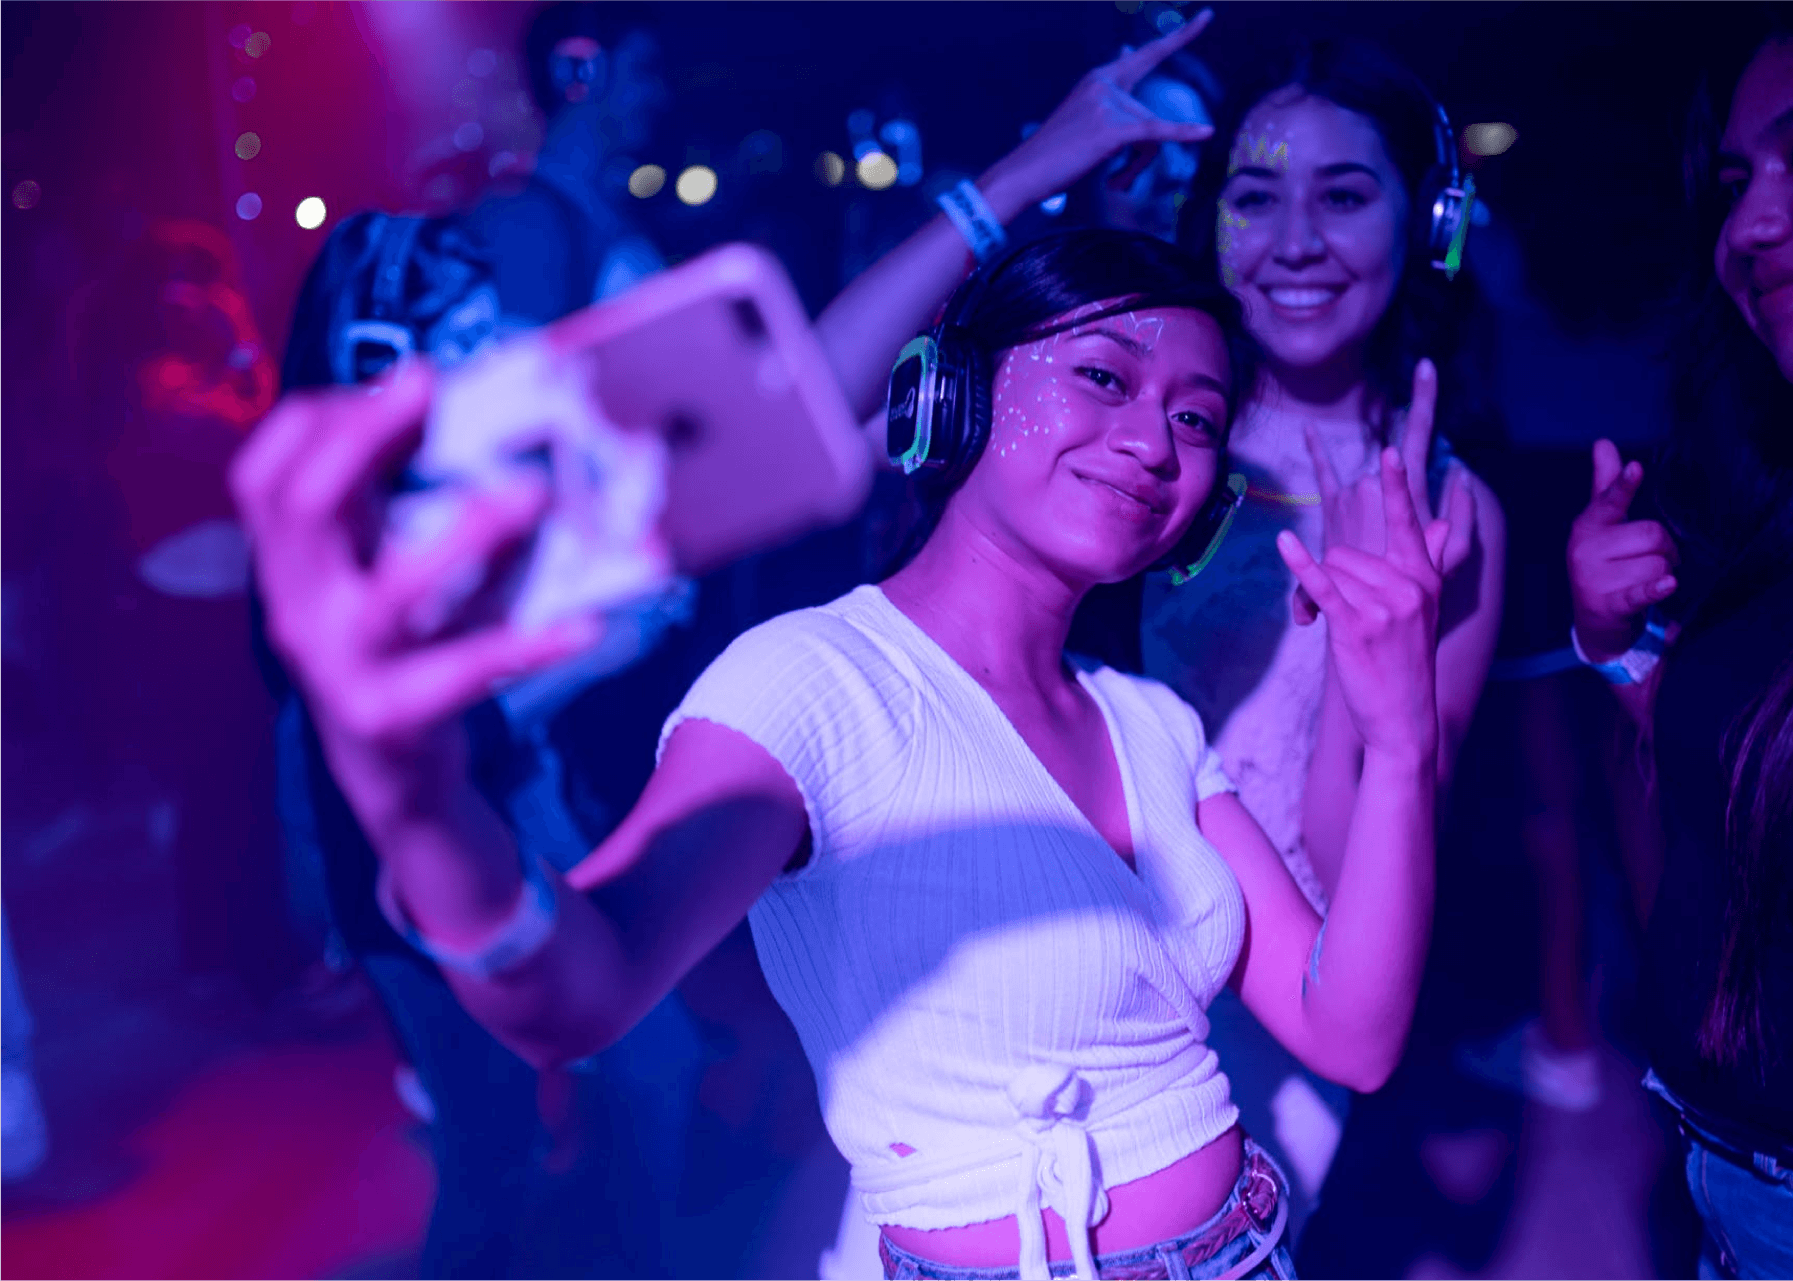 Club Night Guest Taking A Selfie